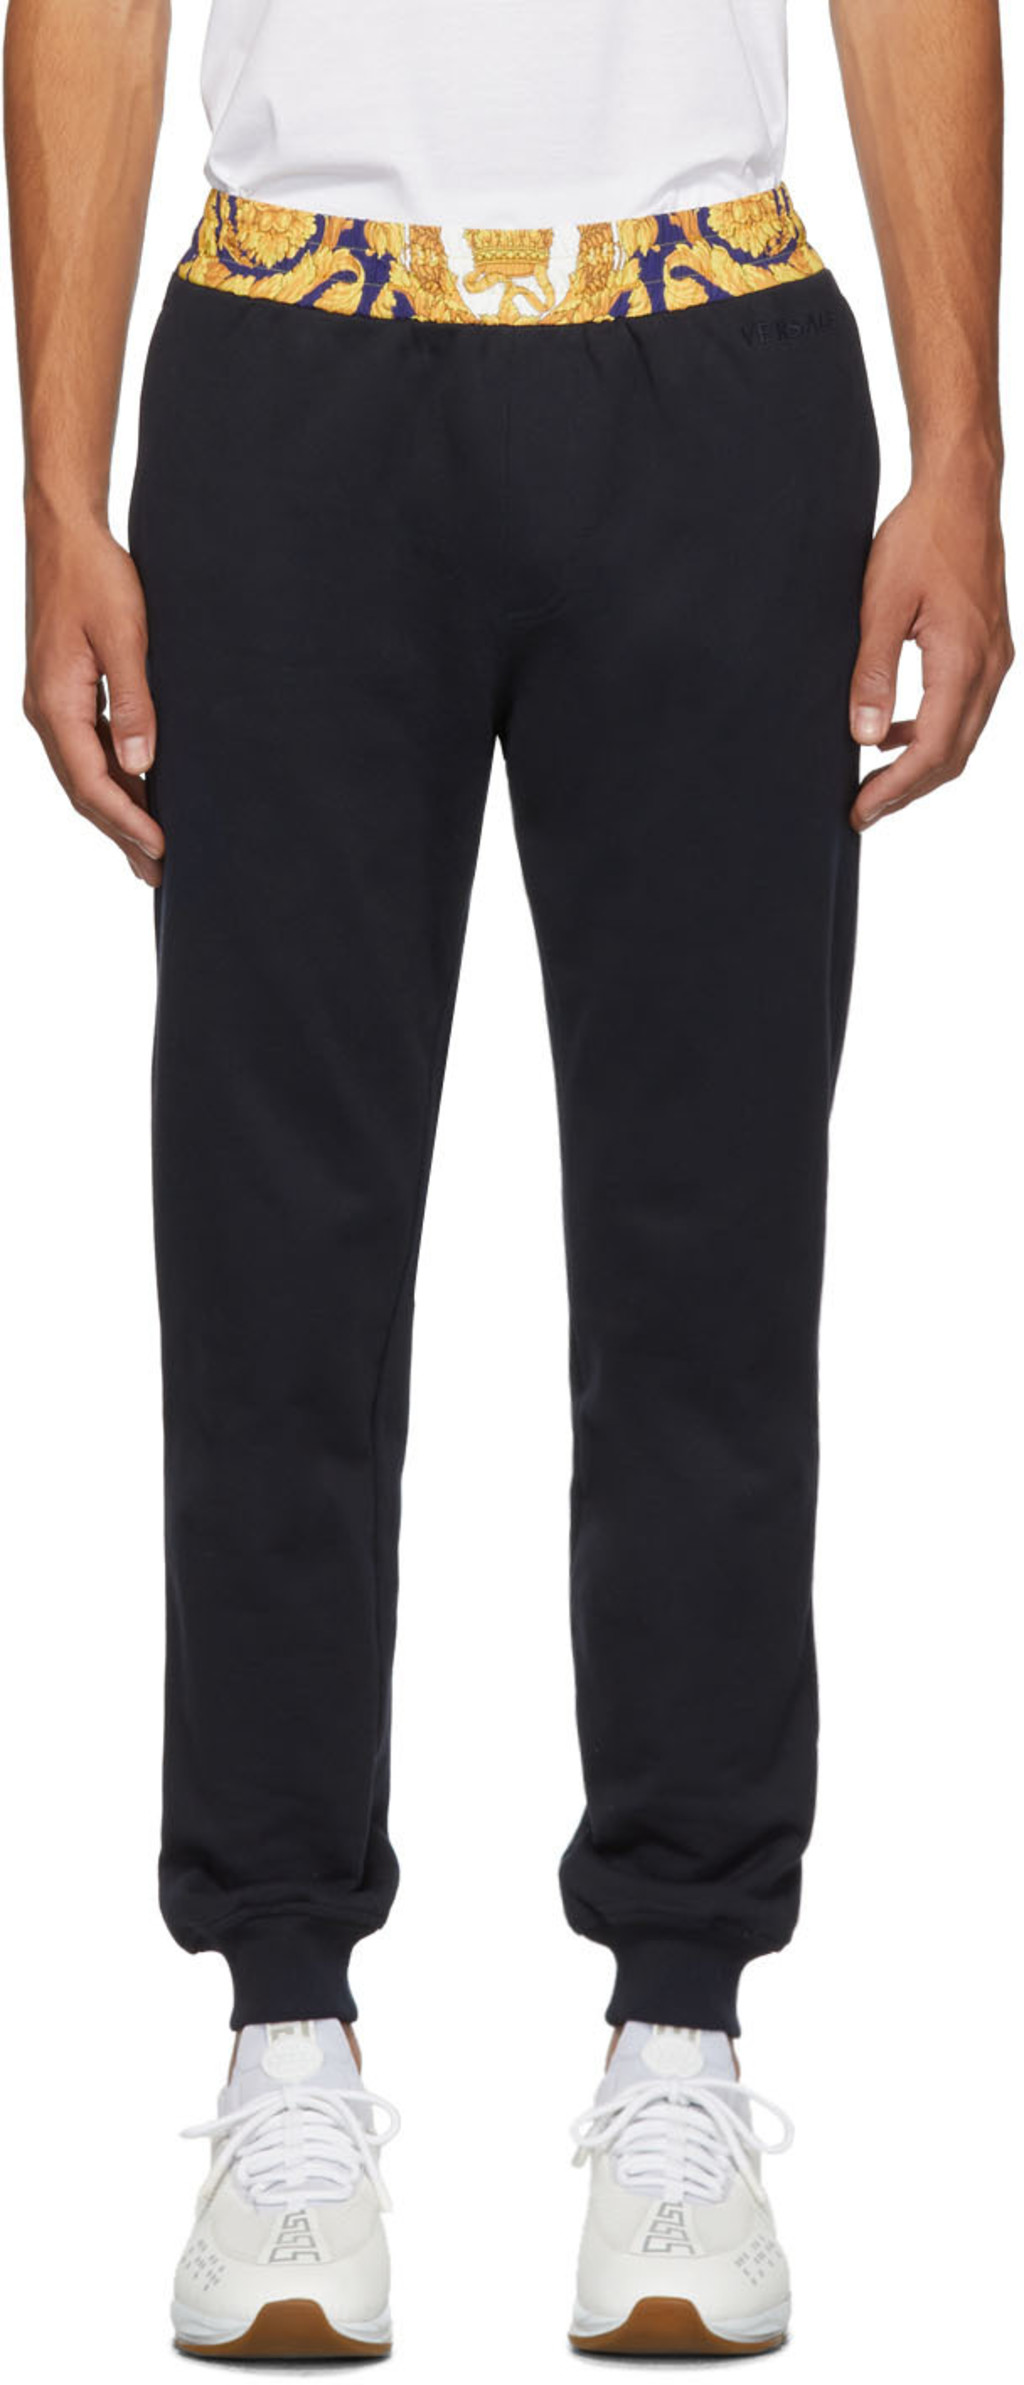 a36169f8a0 Navy Barocco Border Lounge Pants